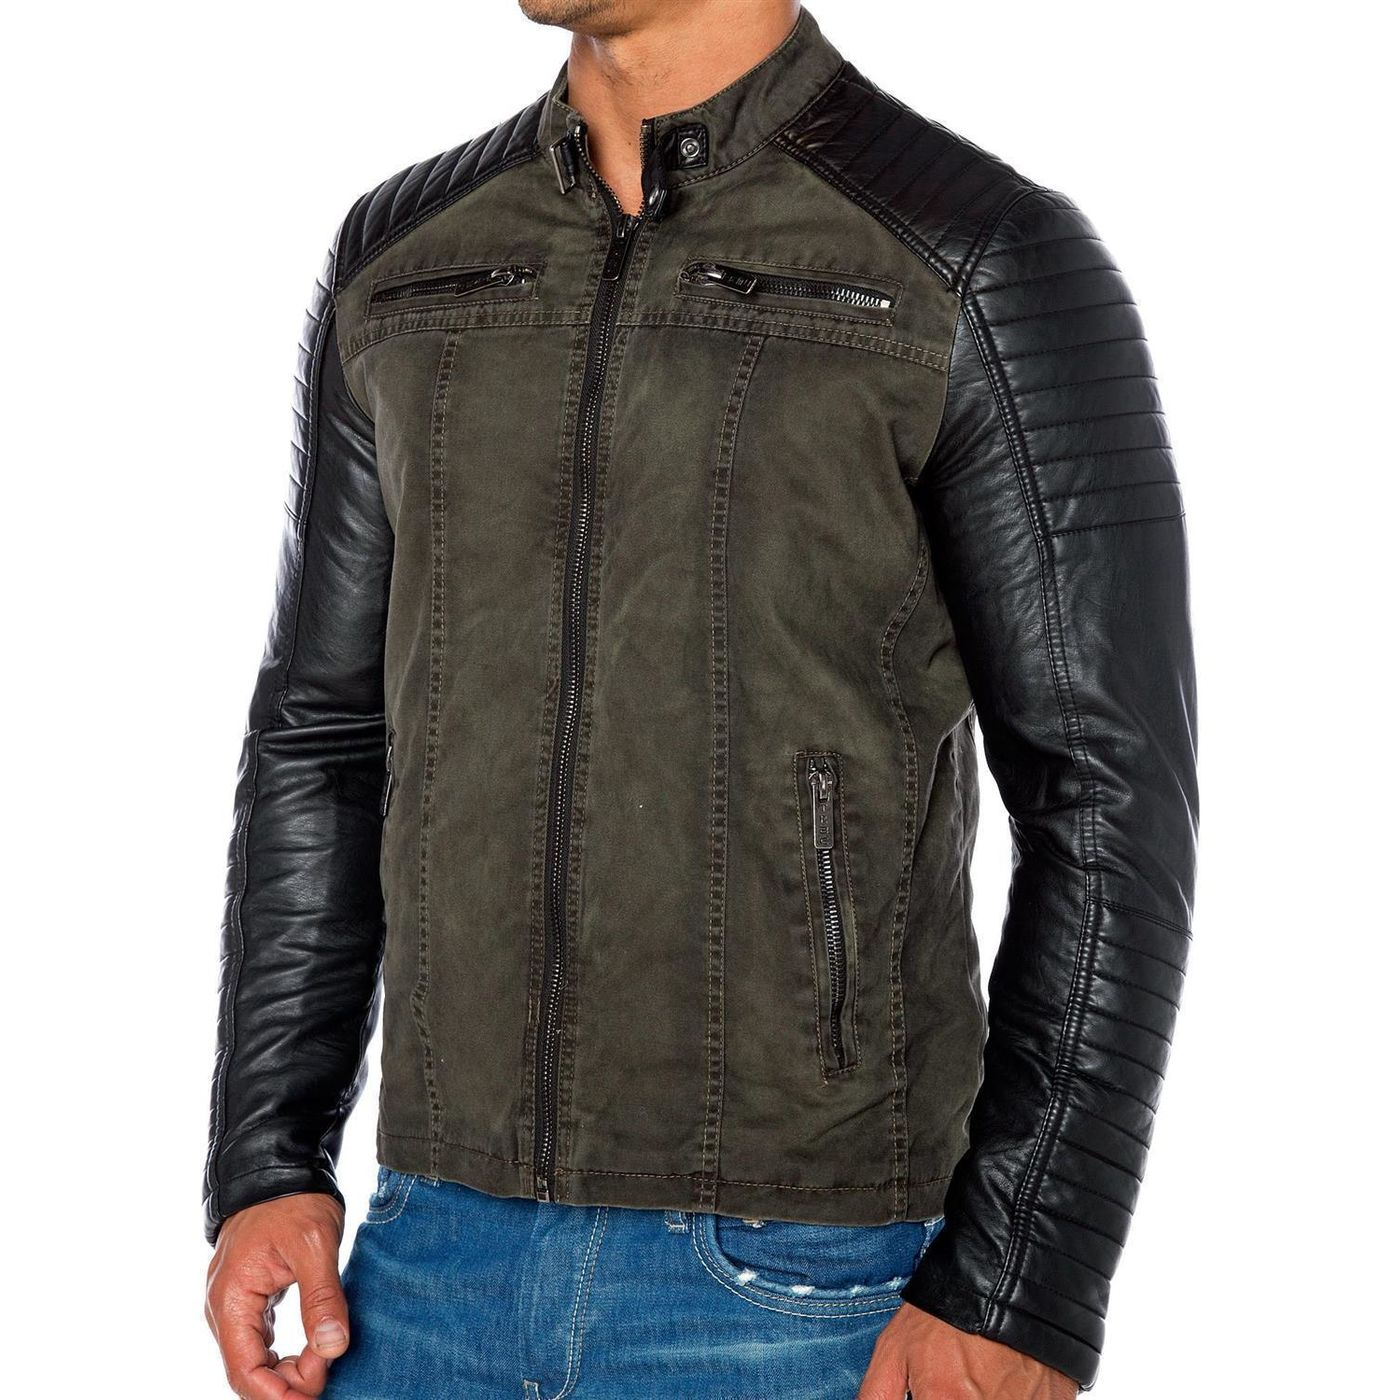 red bridge herren biker jacke kunst lederjacke jacket. Black Bedroom Furniture Sets. Home Design Ideas